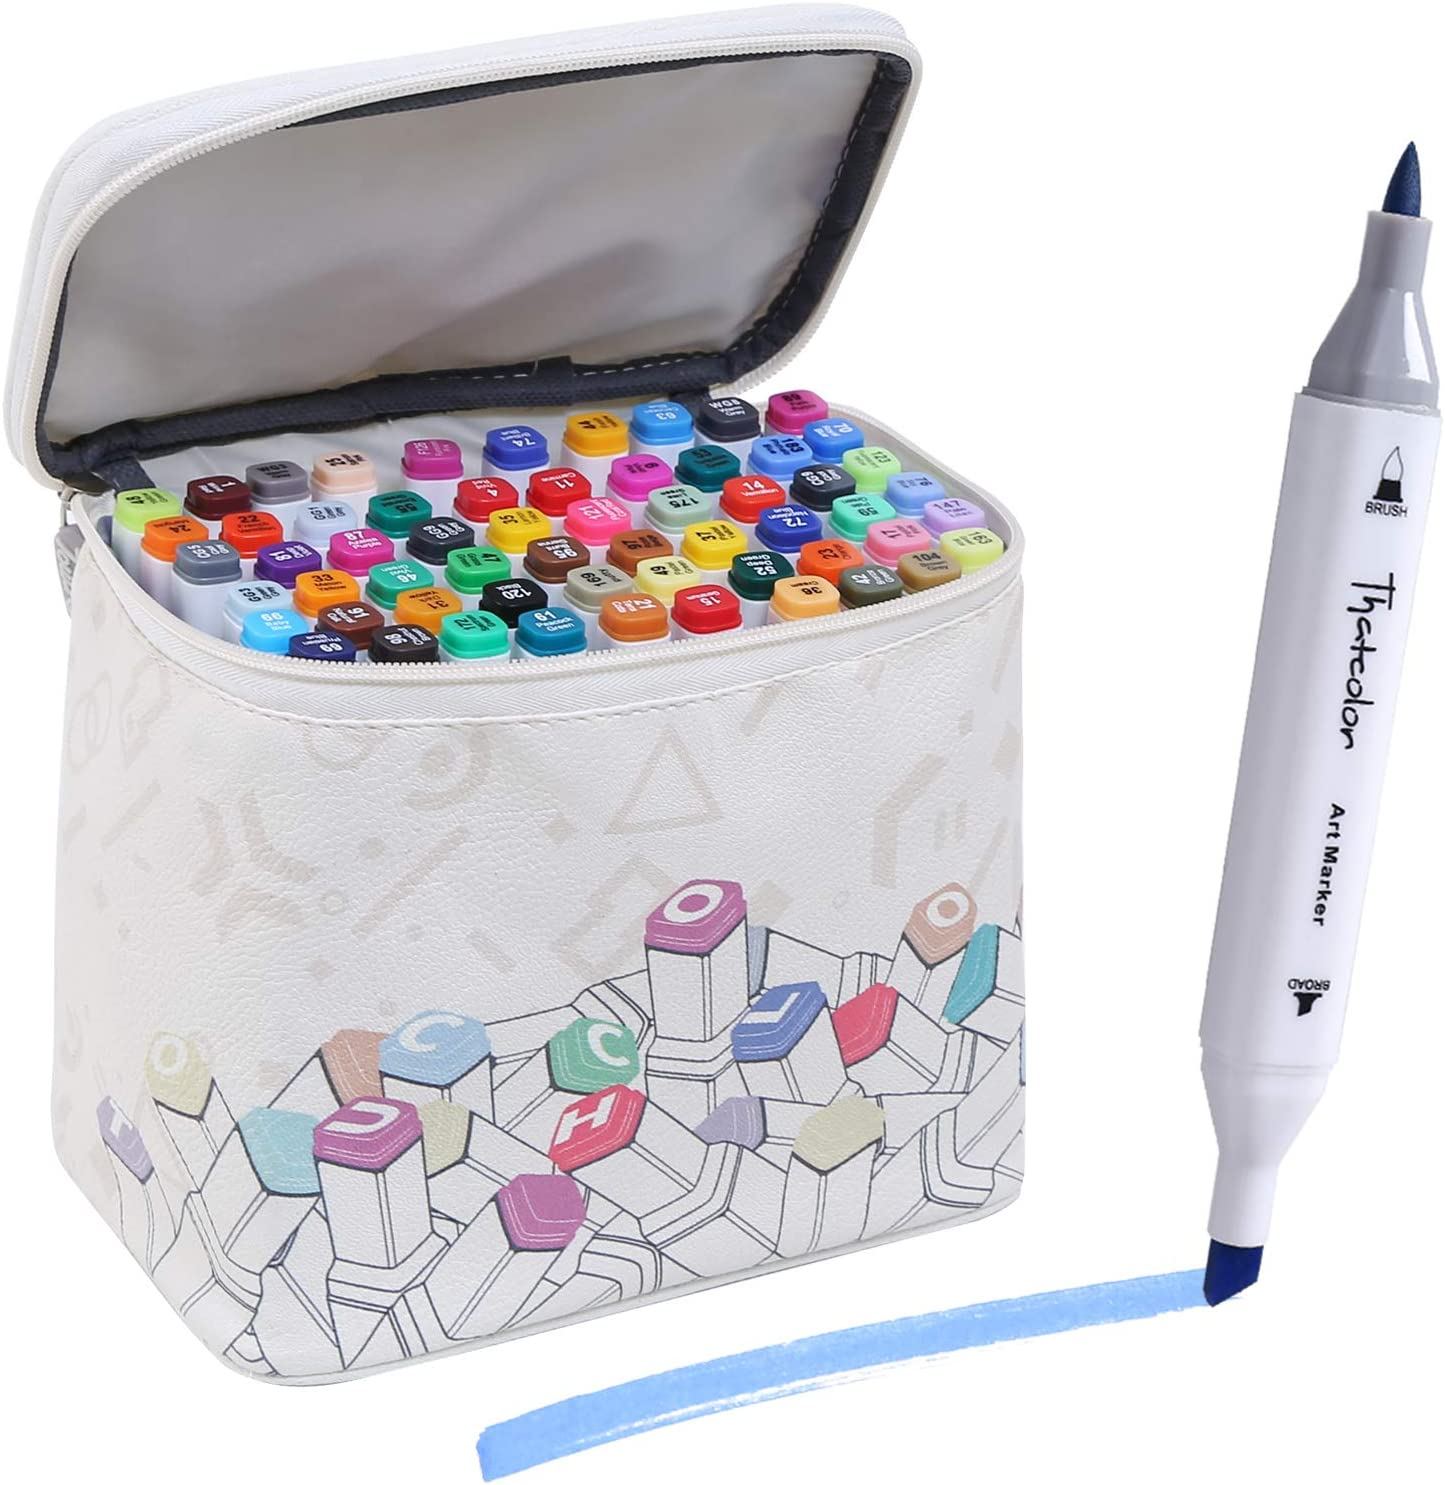 Thatcolor 60 Colors Alcohol Brush Markers with Storage Zipper Bag Dual Tips Markers Set for Adult & Kids, Drawing Markers Brush Art Pen Manga for Drawing Coloring with 1 Blender, White